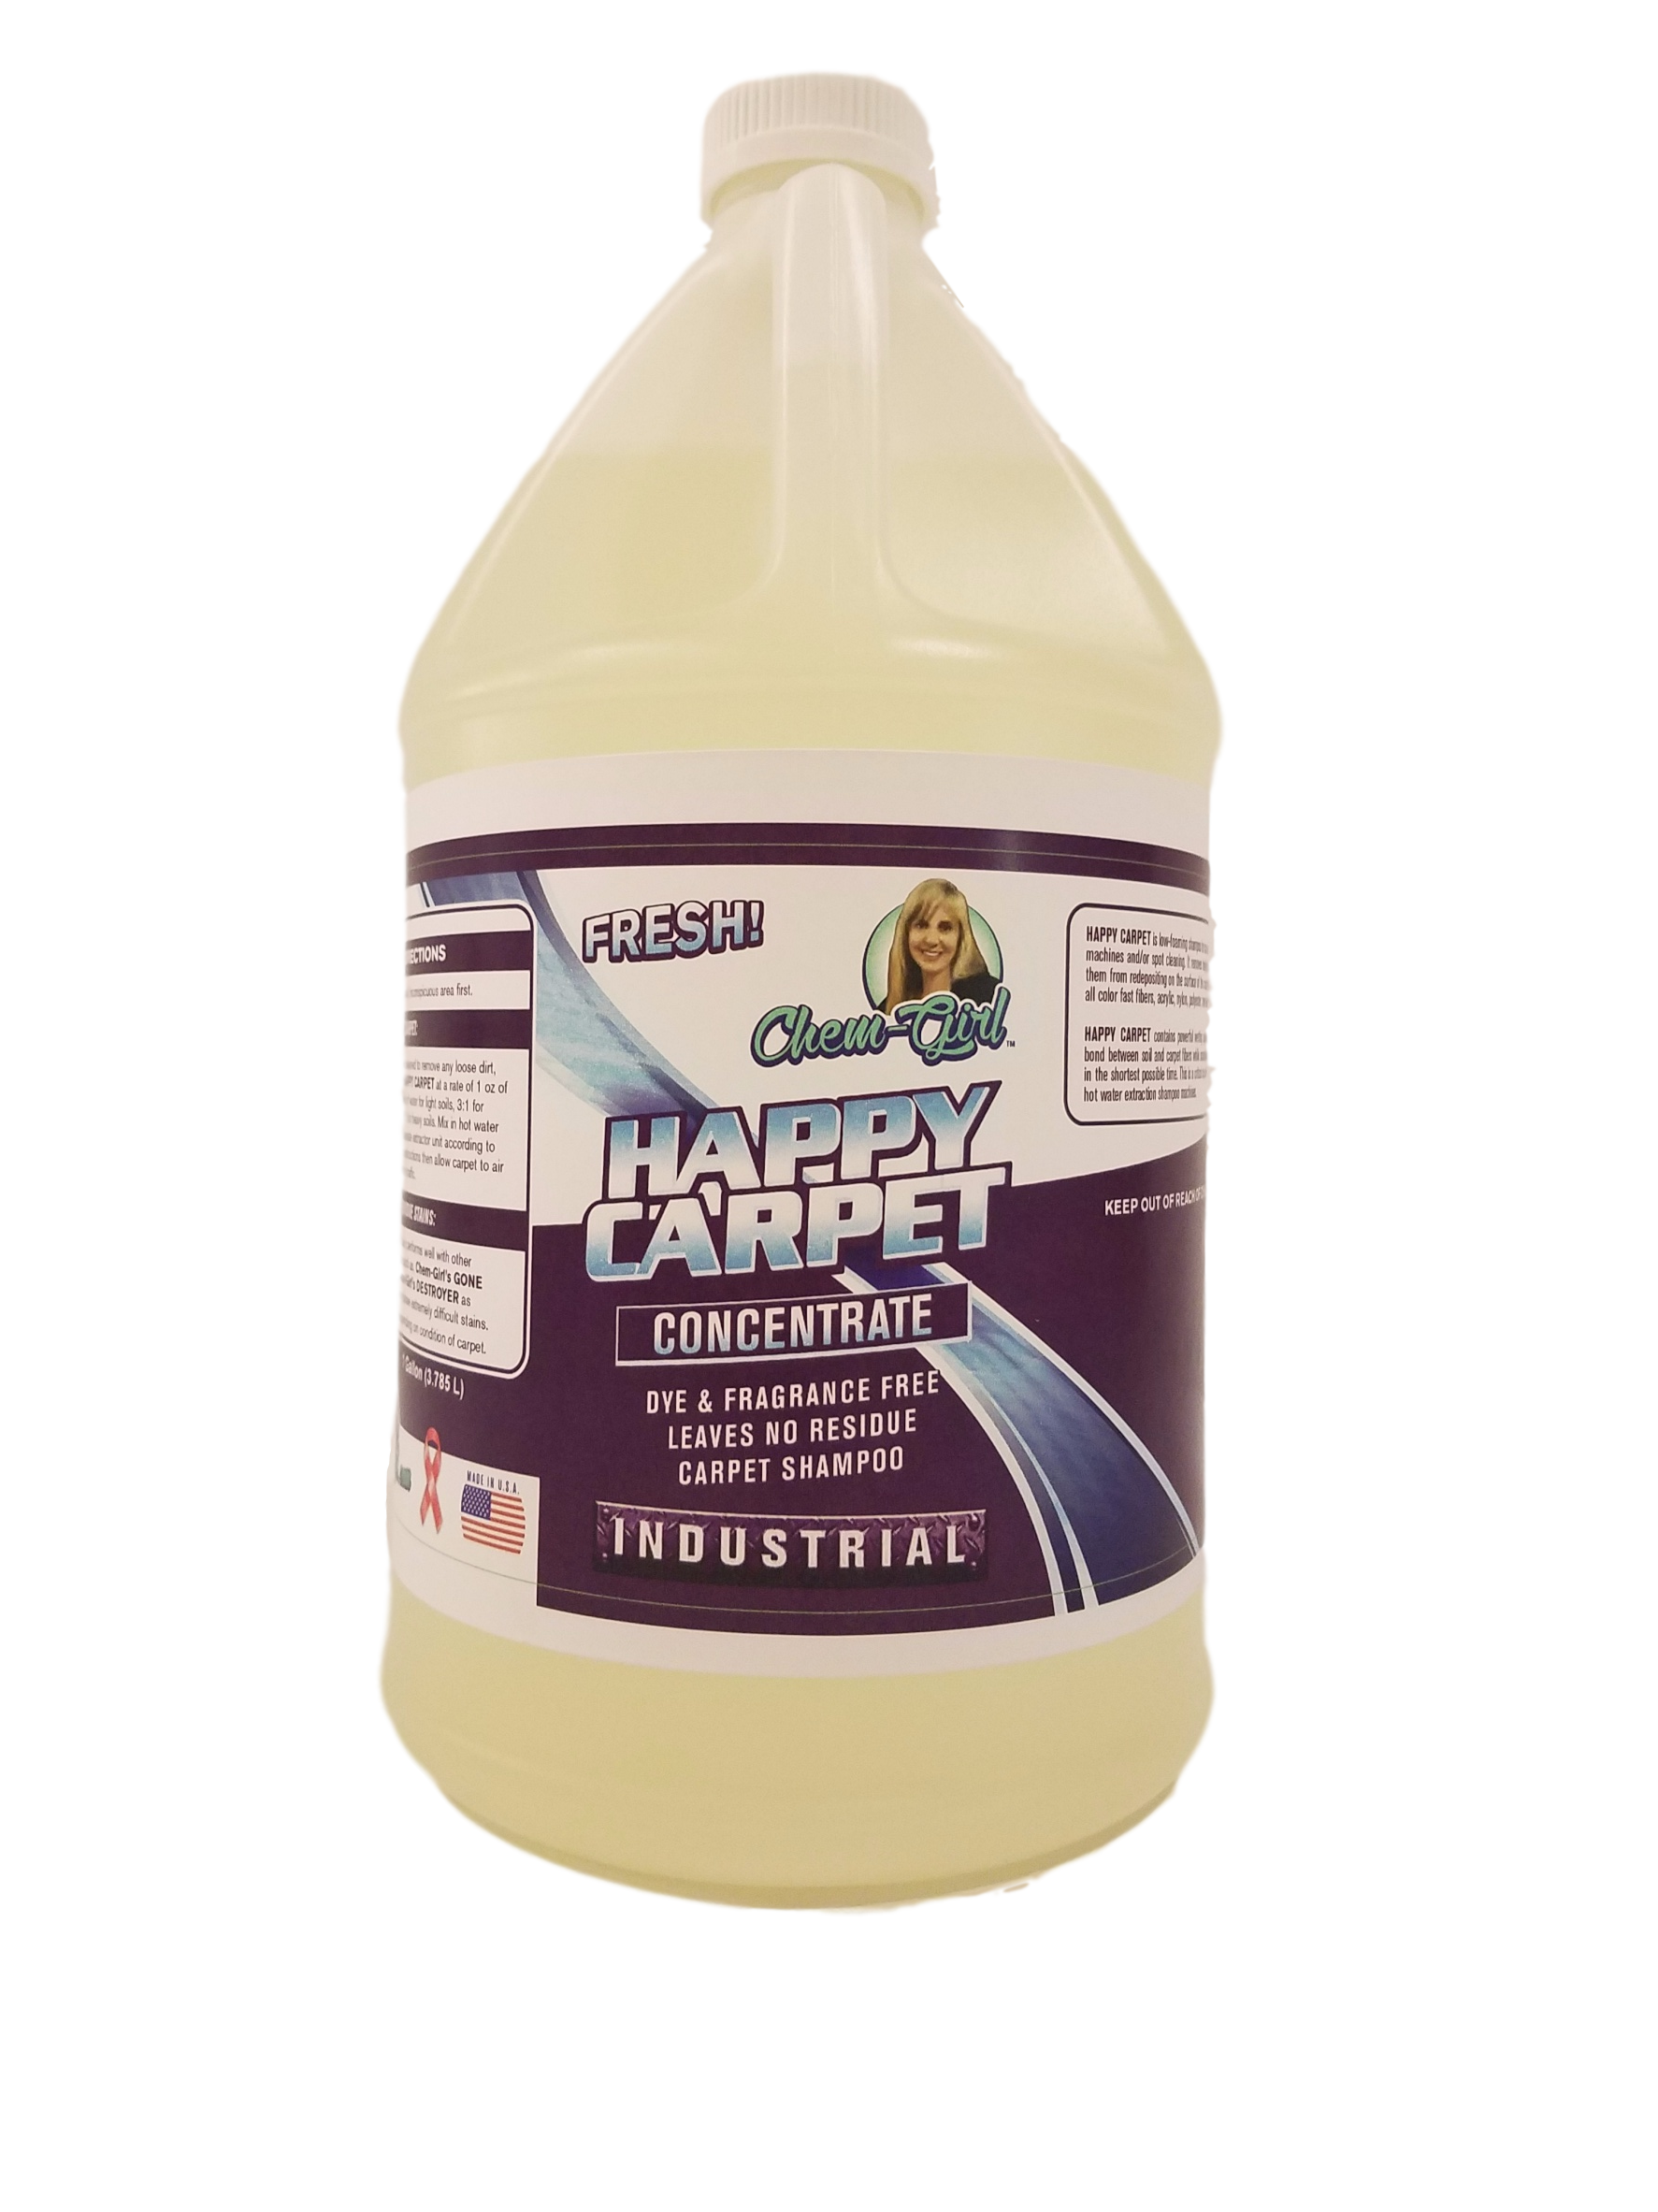 happy carpet gallon - no background